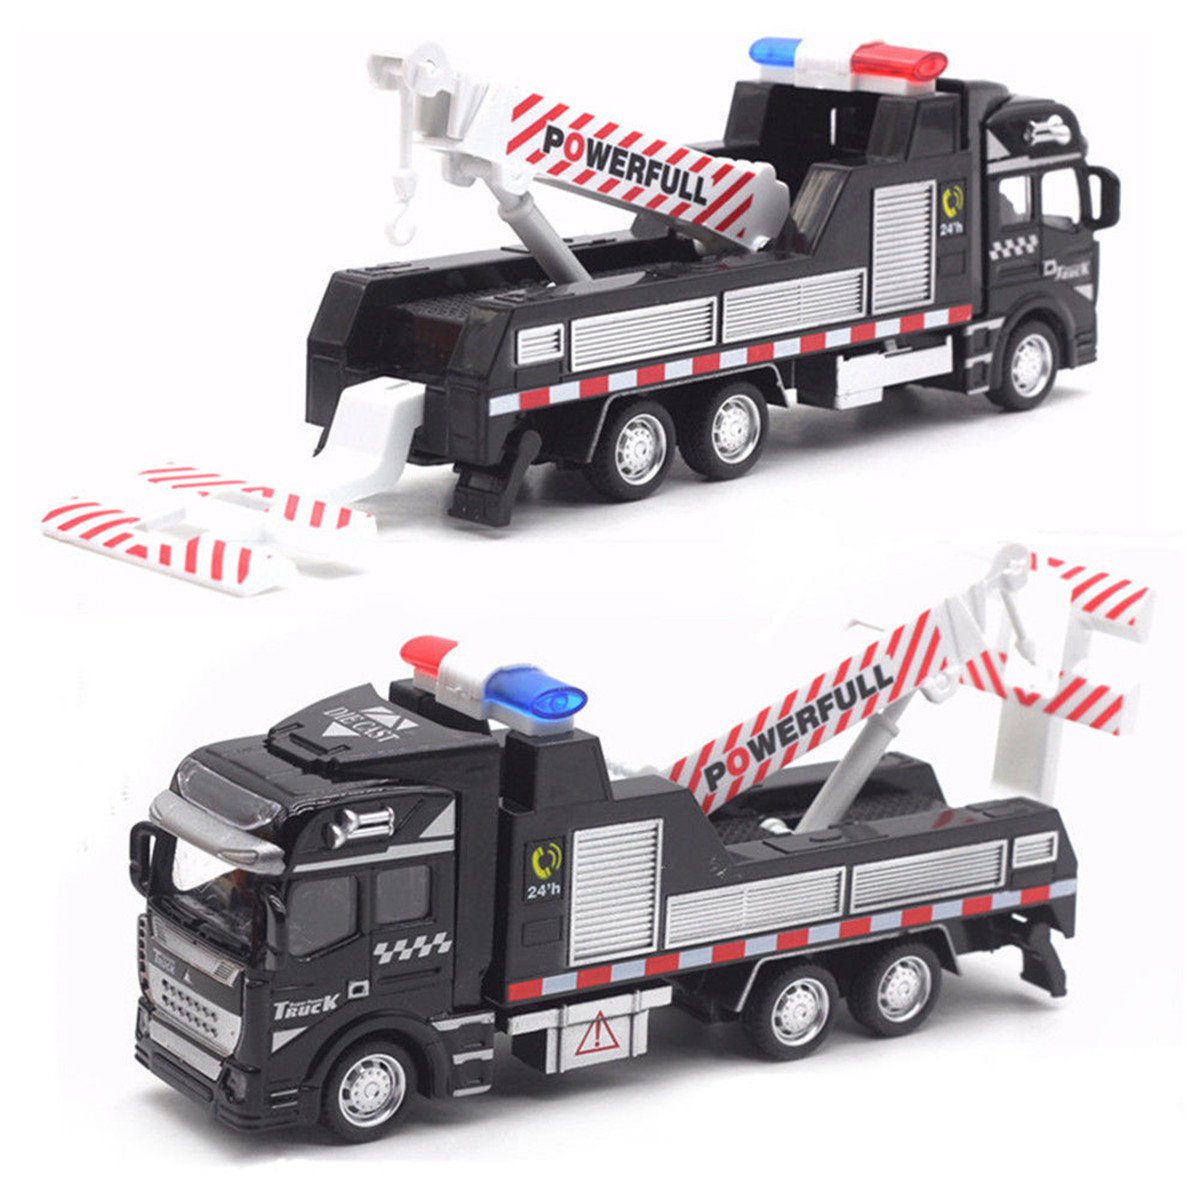 1:48 Scale Alloy Car Model Toys Kid Mini Rescue Police Tow Truck Birthday Gift